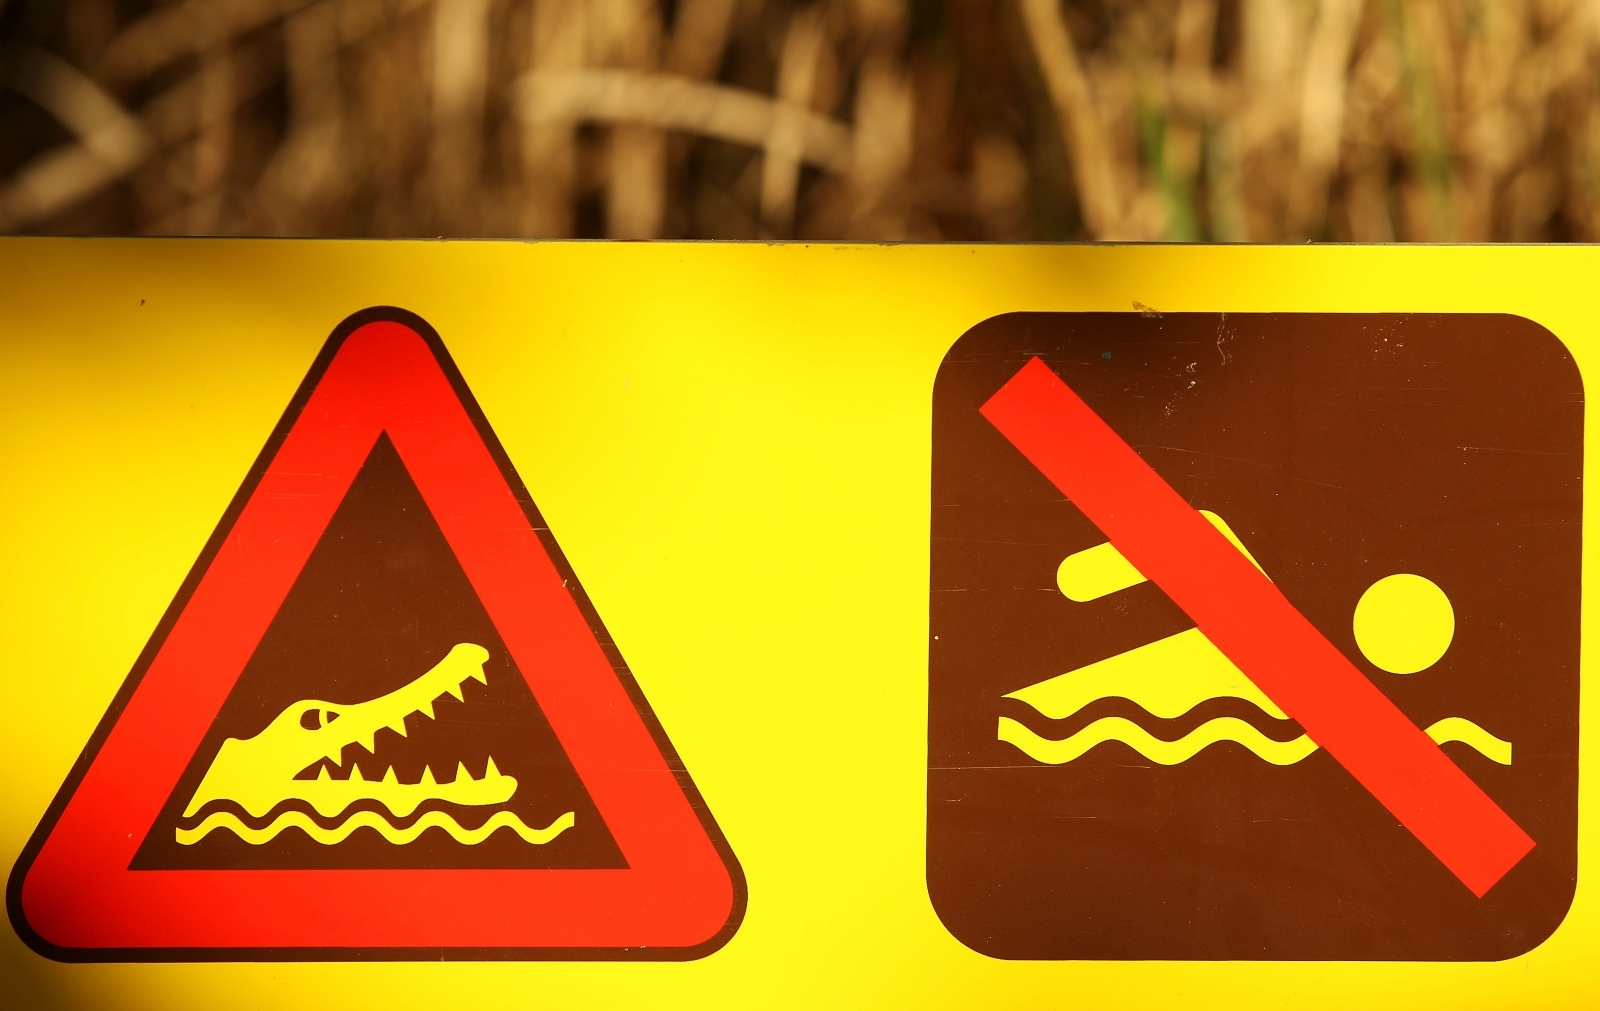 Crocodile swim signs